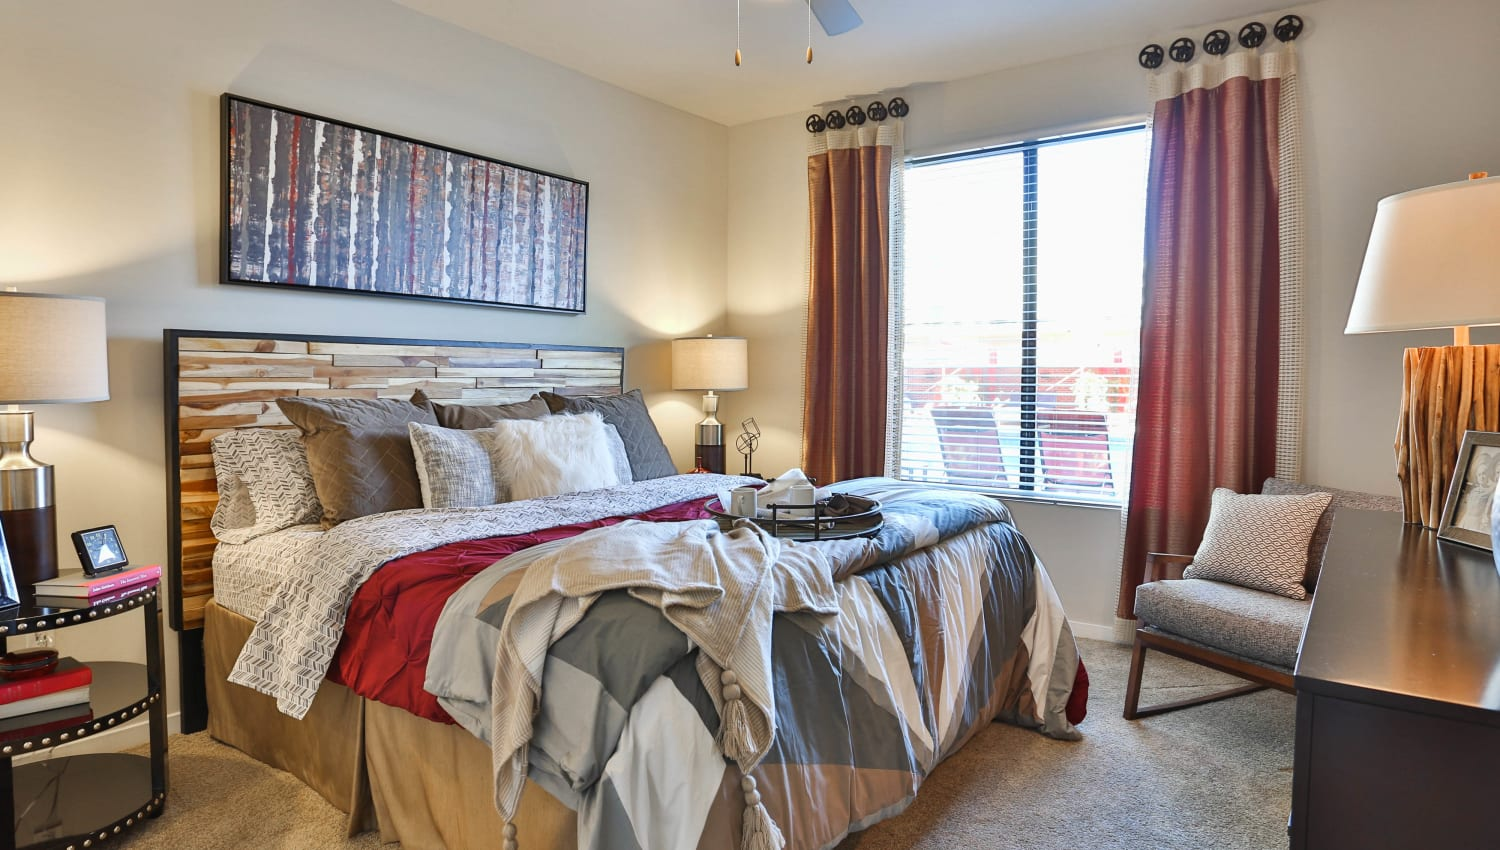 Well-furnished master bedroom in a model apartment at Olympus Steelyard in Chandler, Arizona